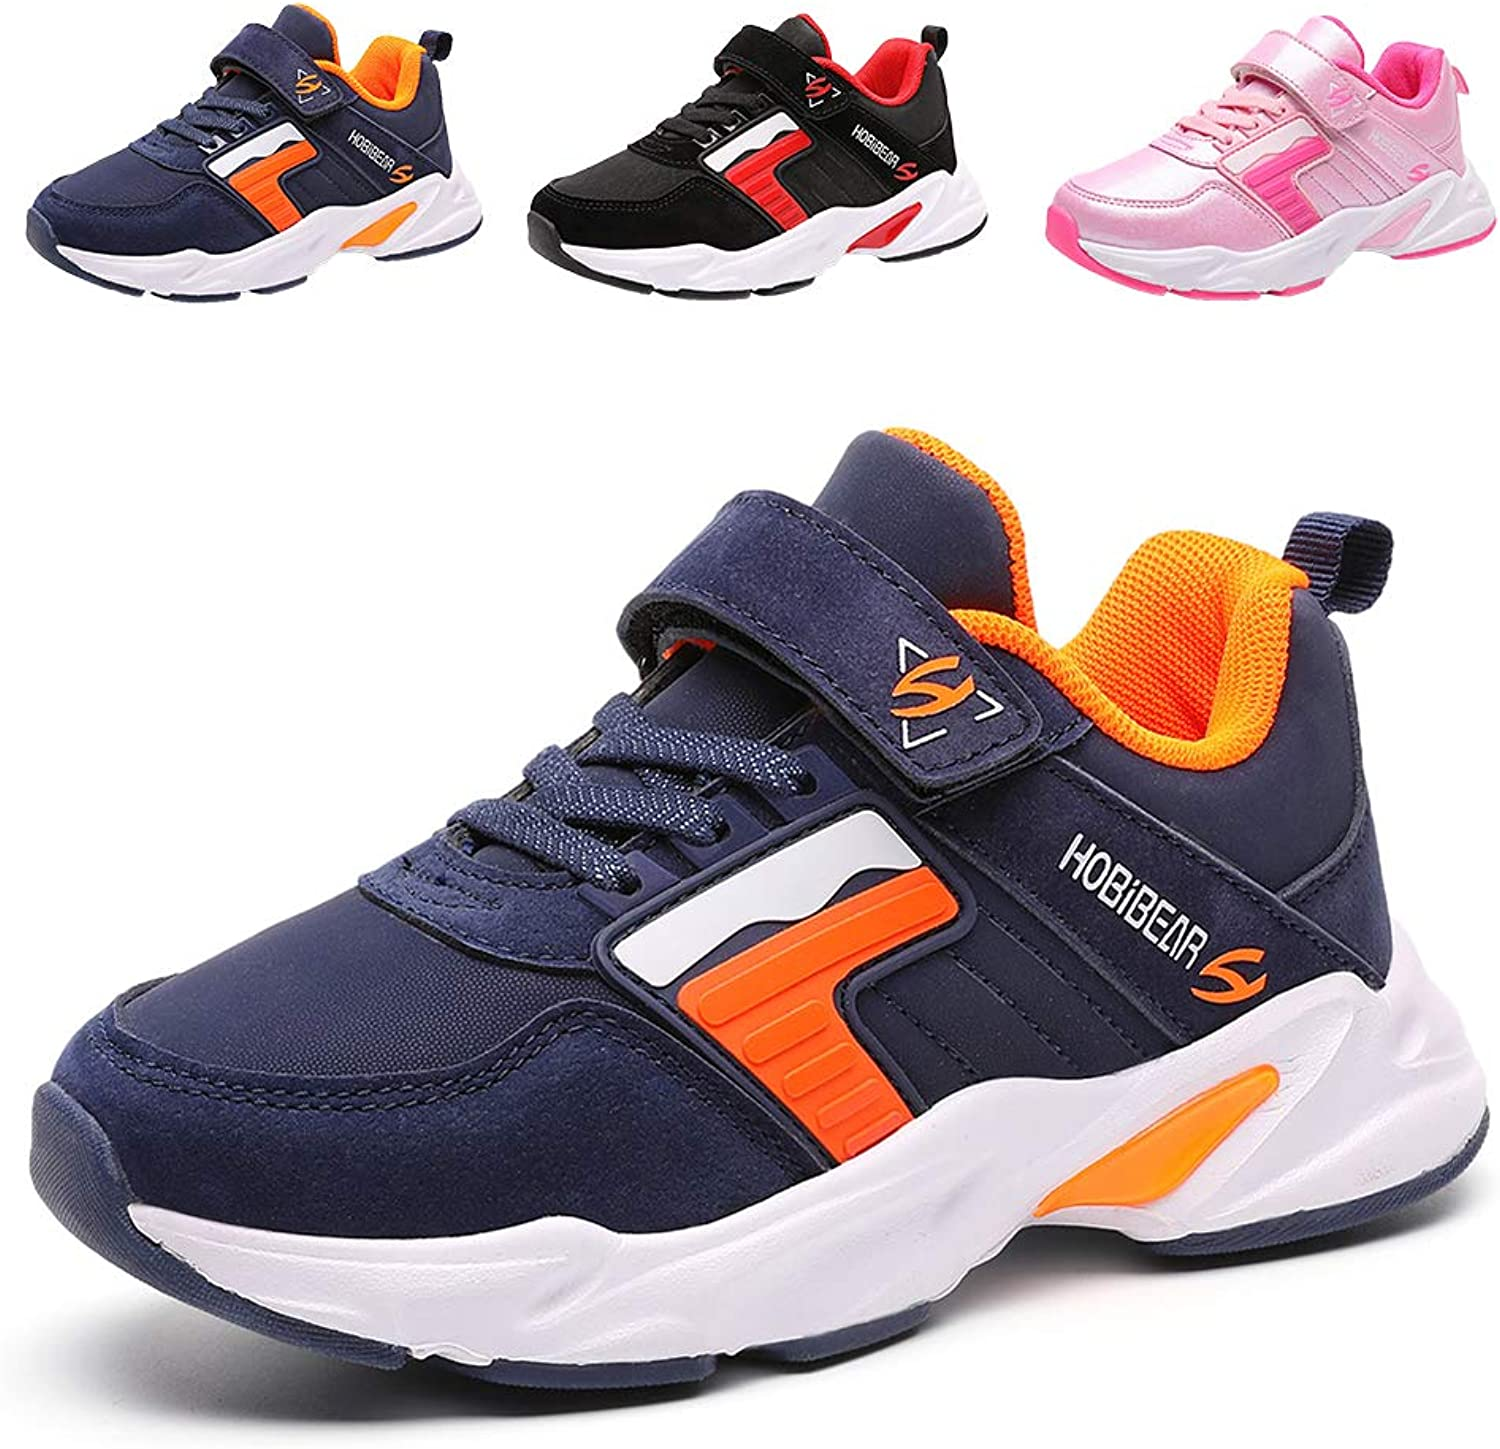 LEXIAODI Kids Sneakers Girls Running shoes Boys Lightweight Athletic Sport shoes Tennis Gym